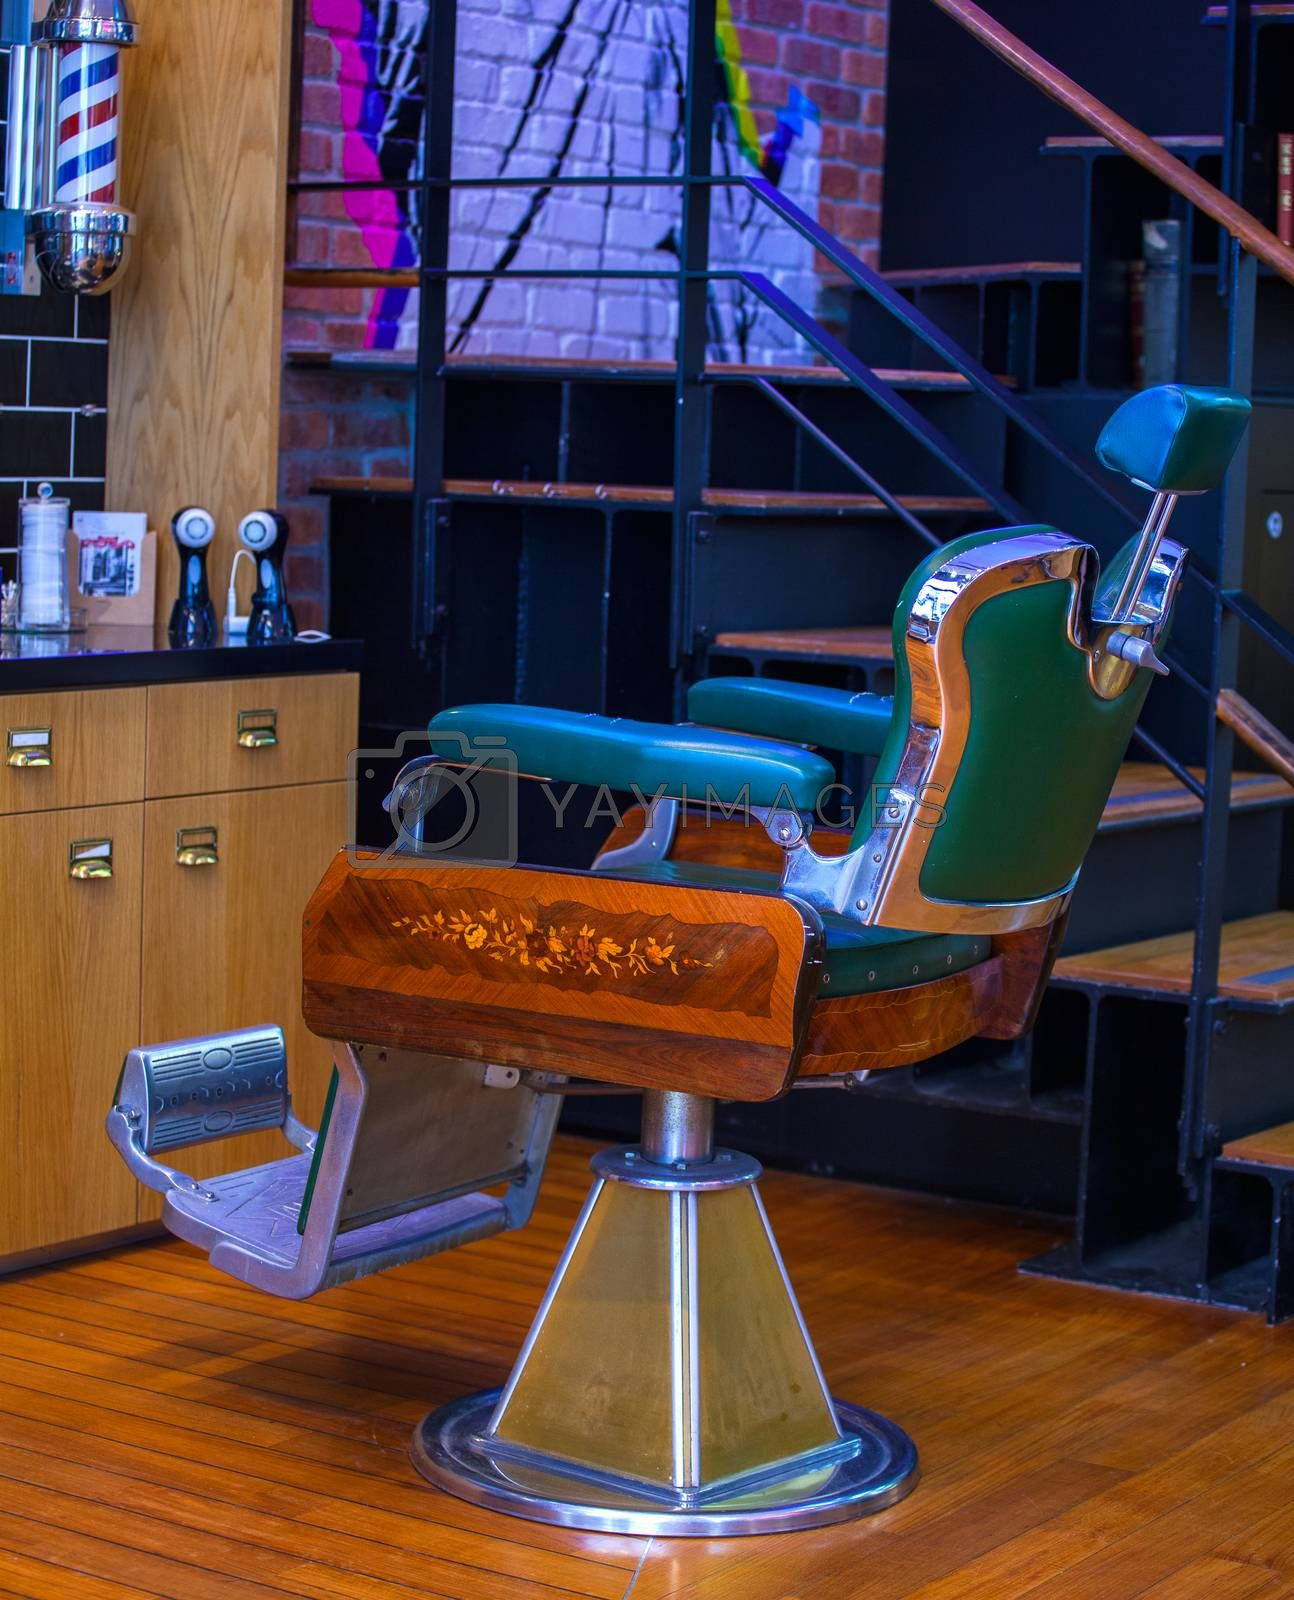 Vintage barber chair by bepsimage